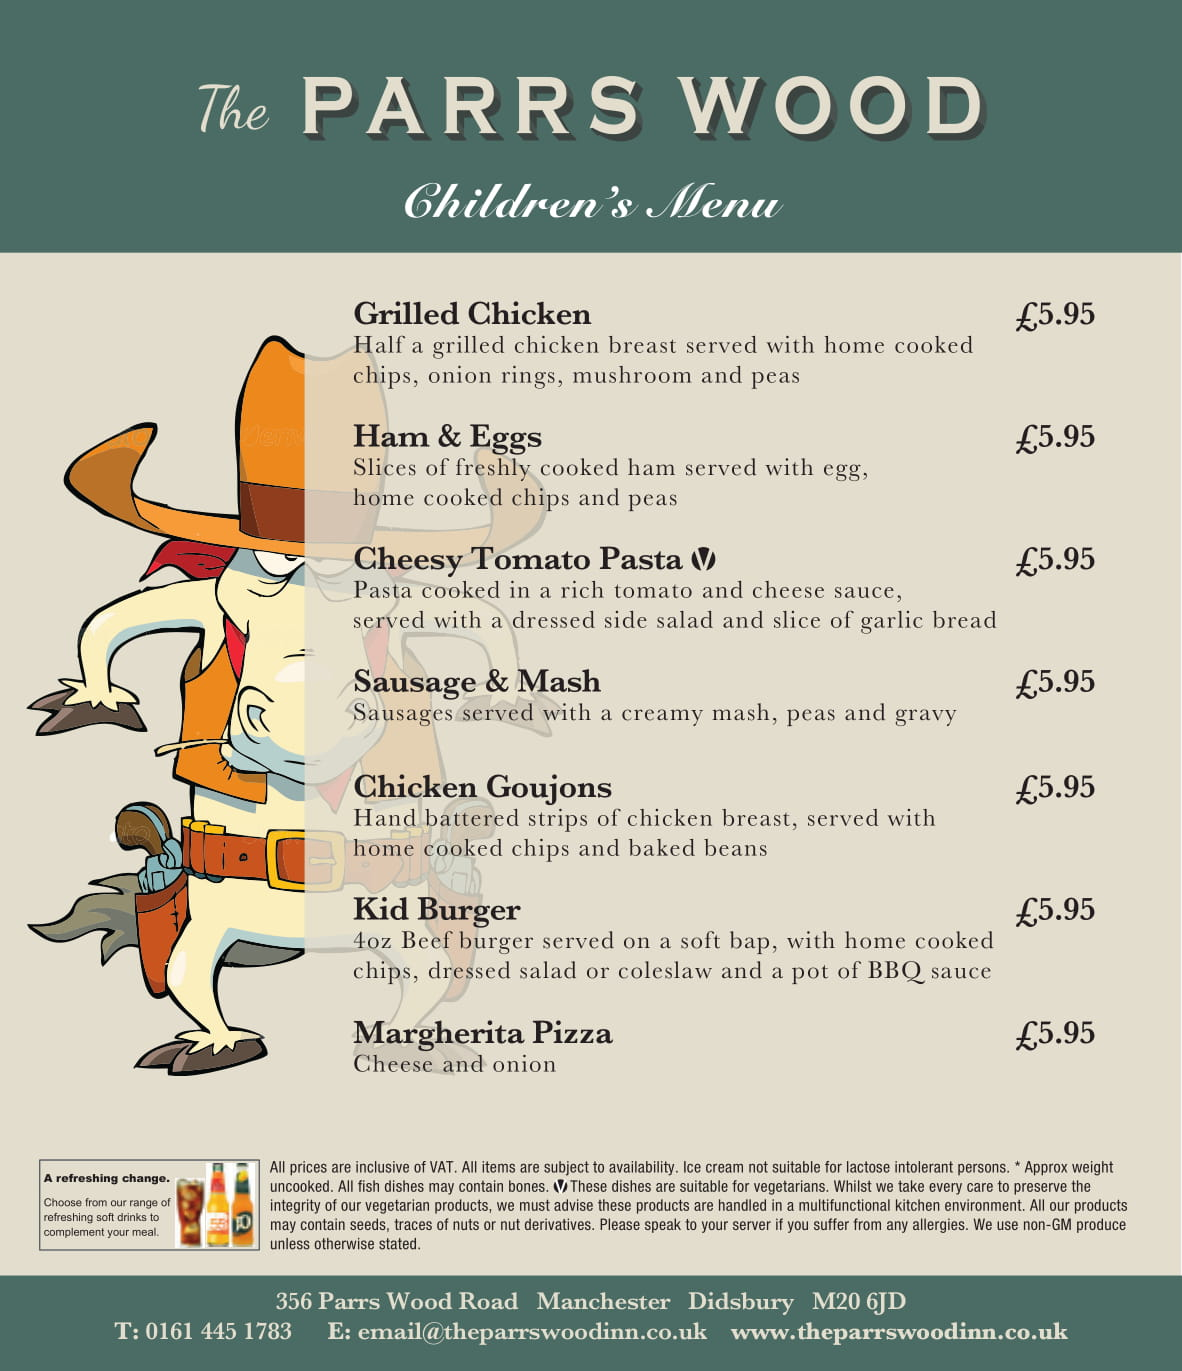 http://www.theparrswoodinn.co.uk/wp-content/uploads/2019/06/ParrsWood-Childrens-Menu-June-2019-001.jpg